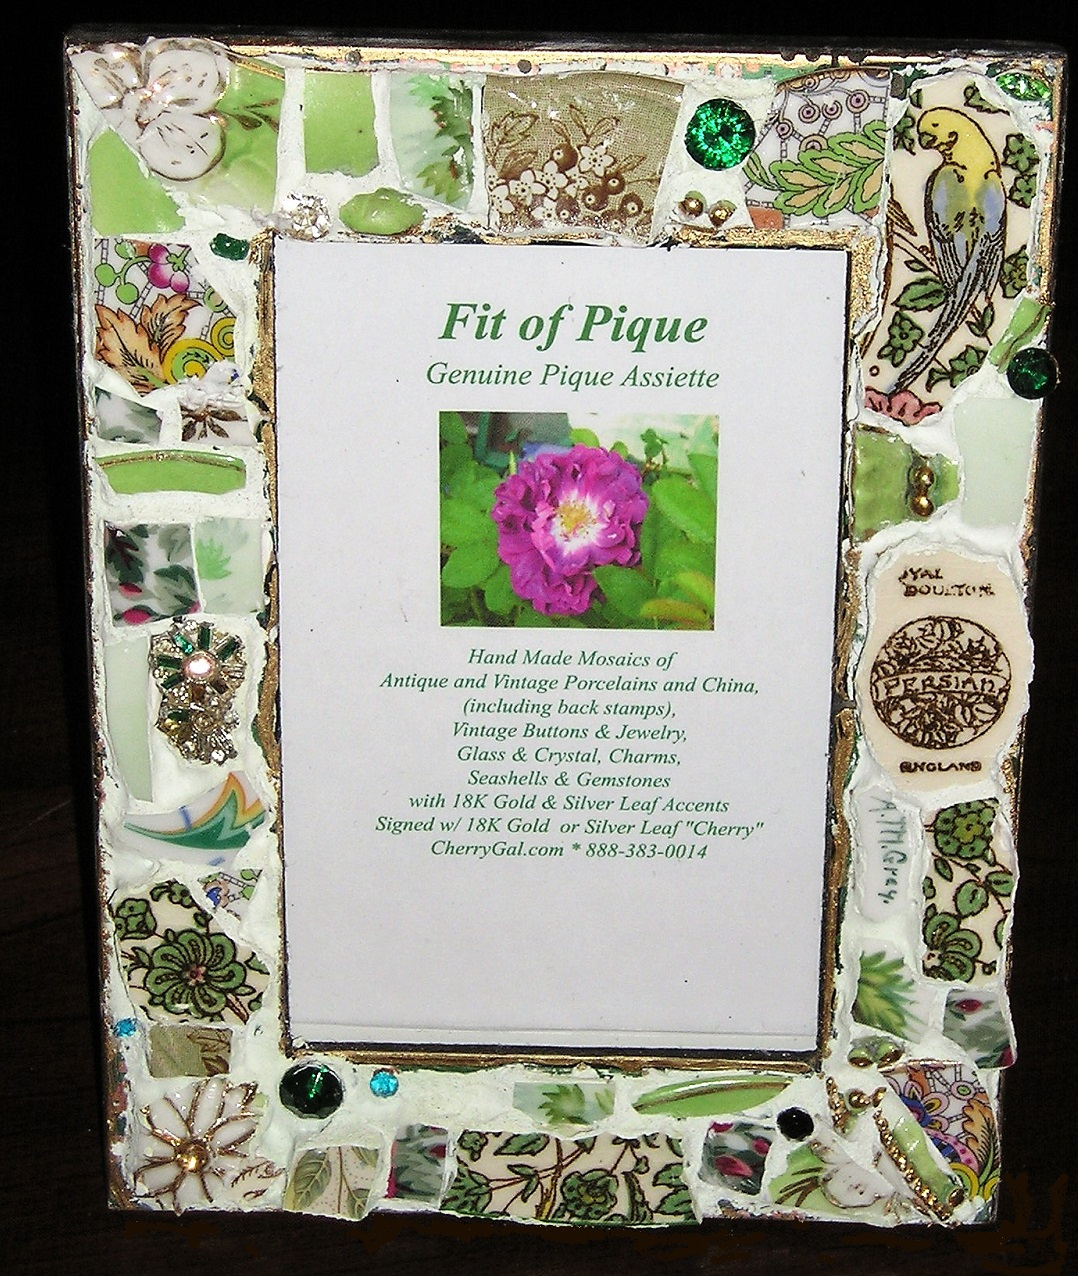 Fit Of Pique Genuine Pique Assiette Photo Frame 4 x 6 Persian Green